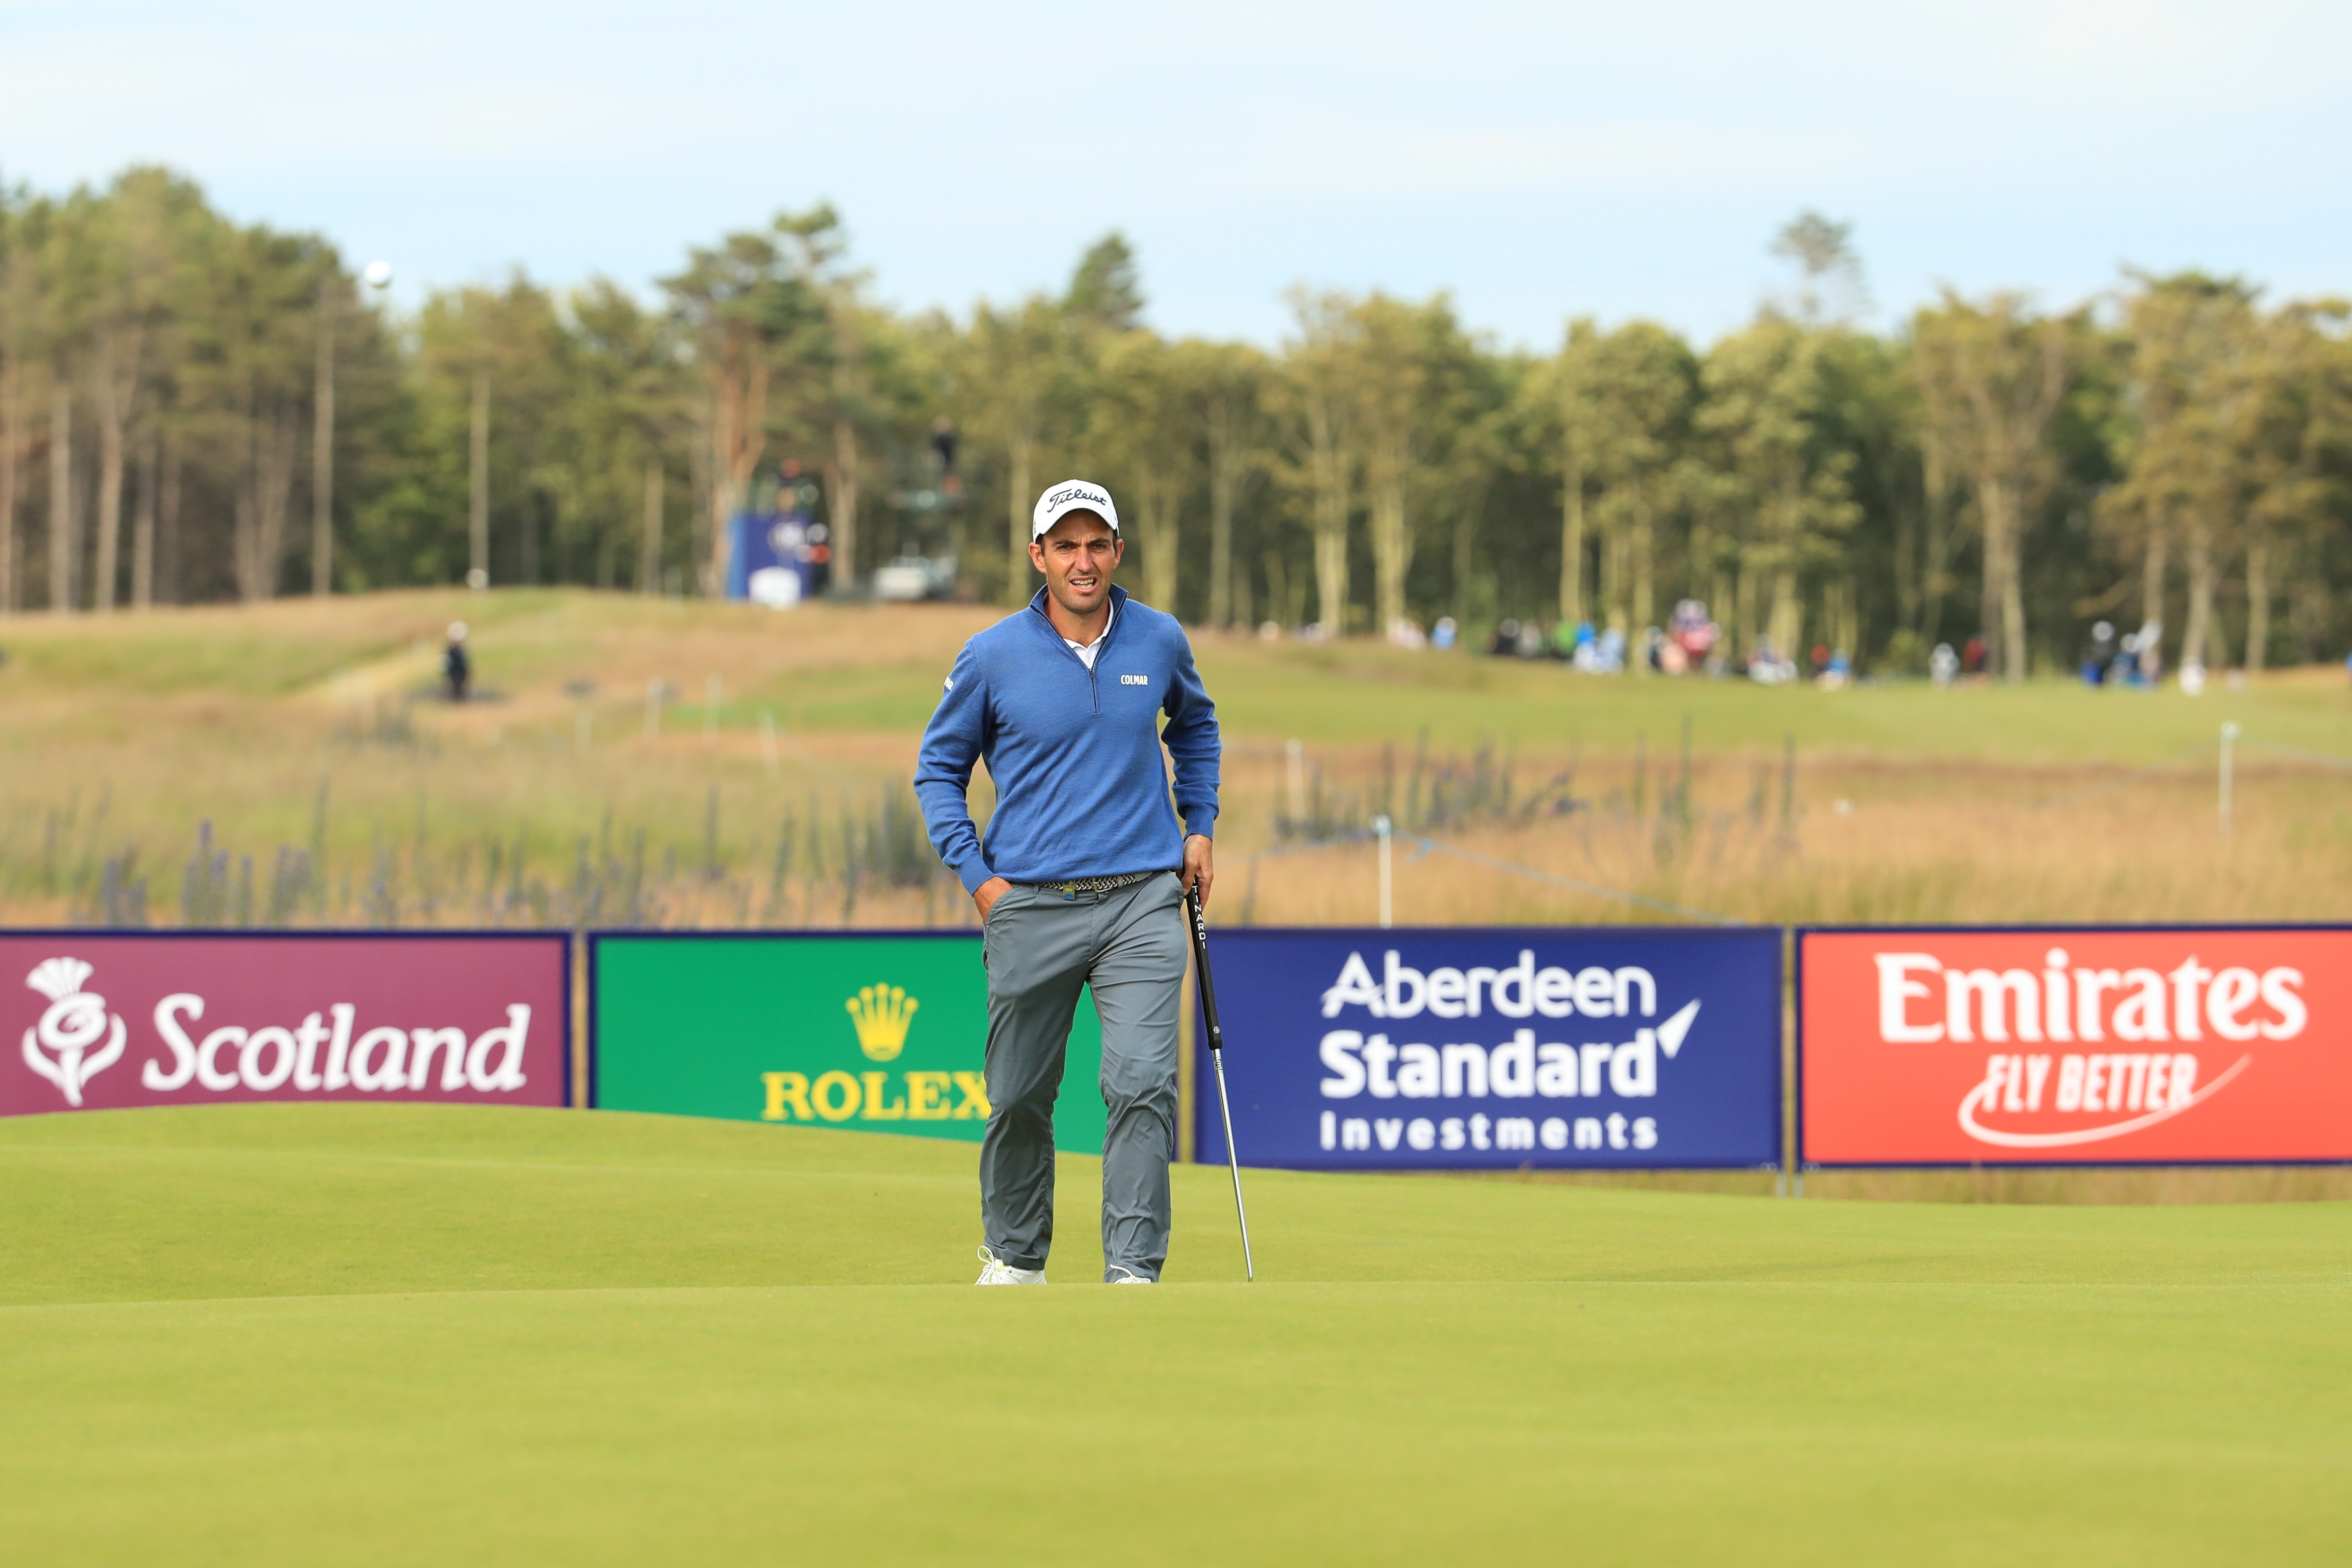 Edoardo Molinari walks to the green of the 9th hole during day 1 of the Aberdeen Standard Investments Scottish Open at The Renaissance Club. (Photo by Andrew Redington/Getty Images)